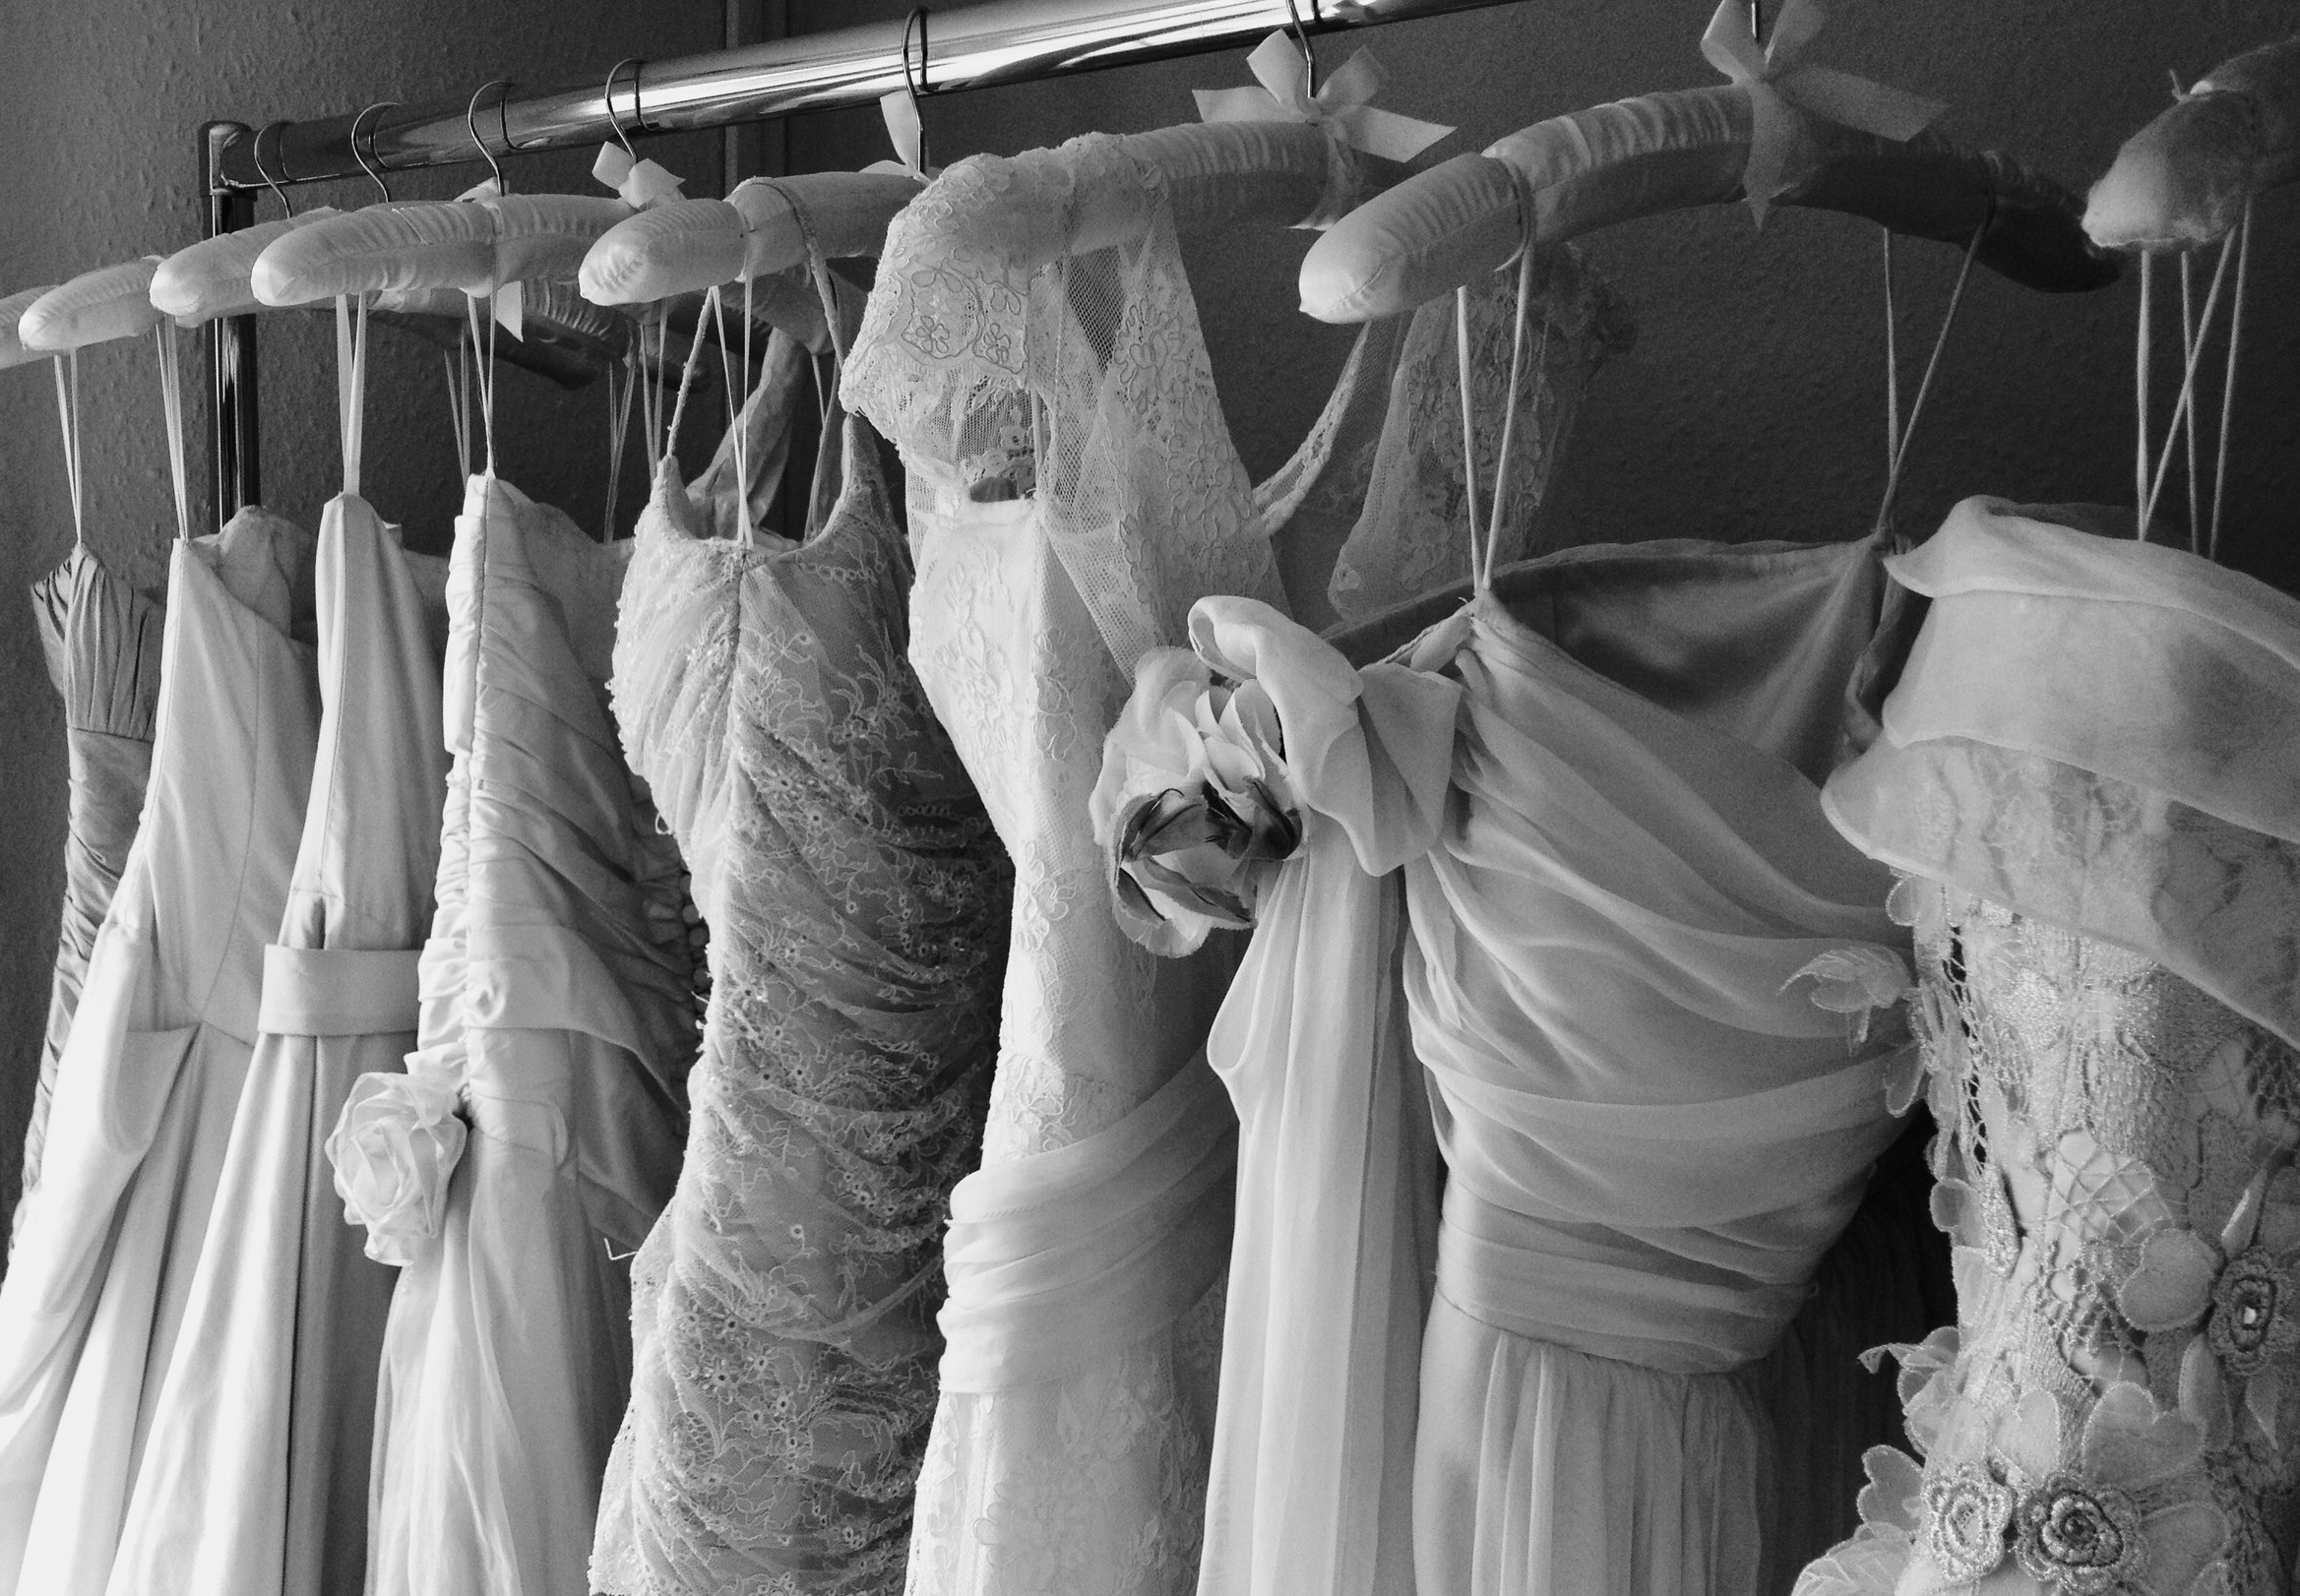 The Wedding Wokshop - wedding dress and bridal gown shop in Ampthill, Bedfordshire, near Hitchin, Woburn, Milton Keynes